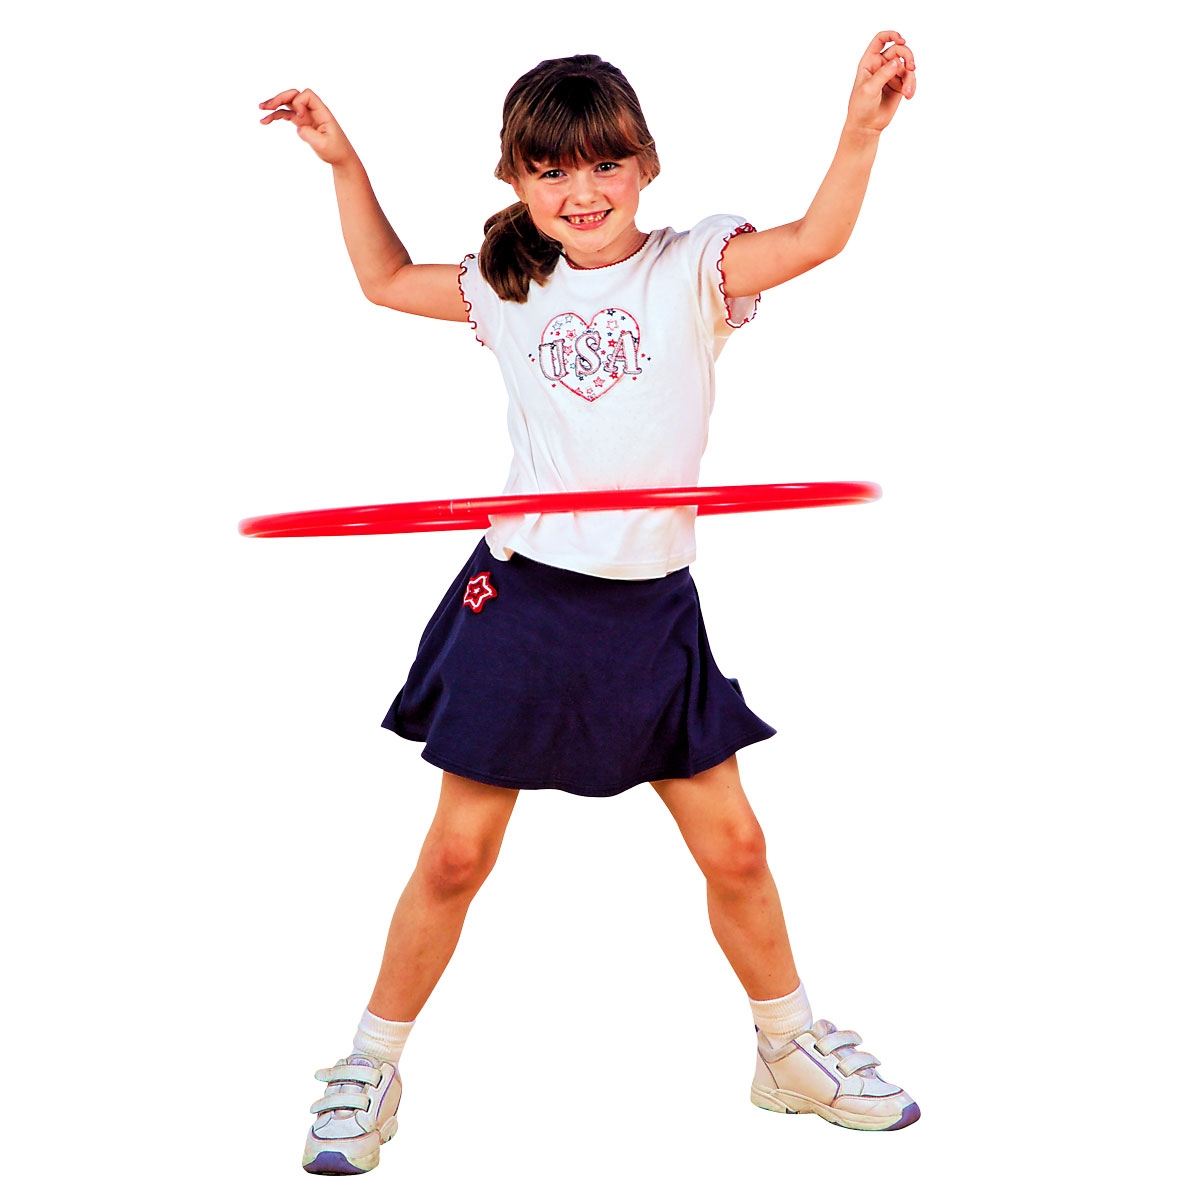 little girl in skirt twirling a red hula hoop